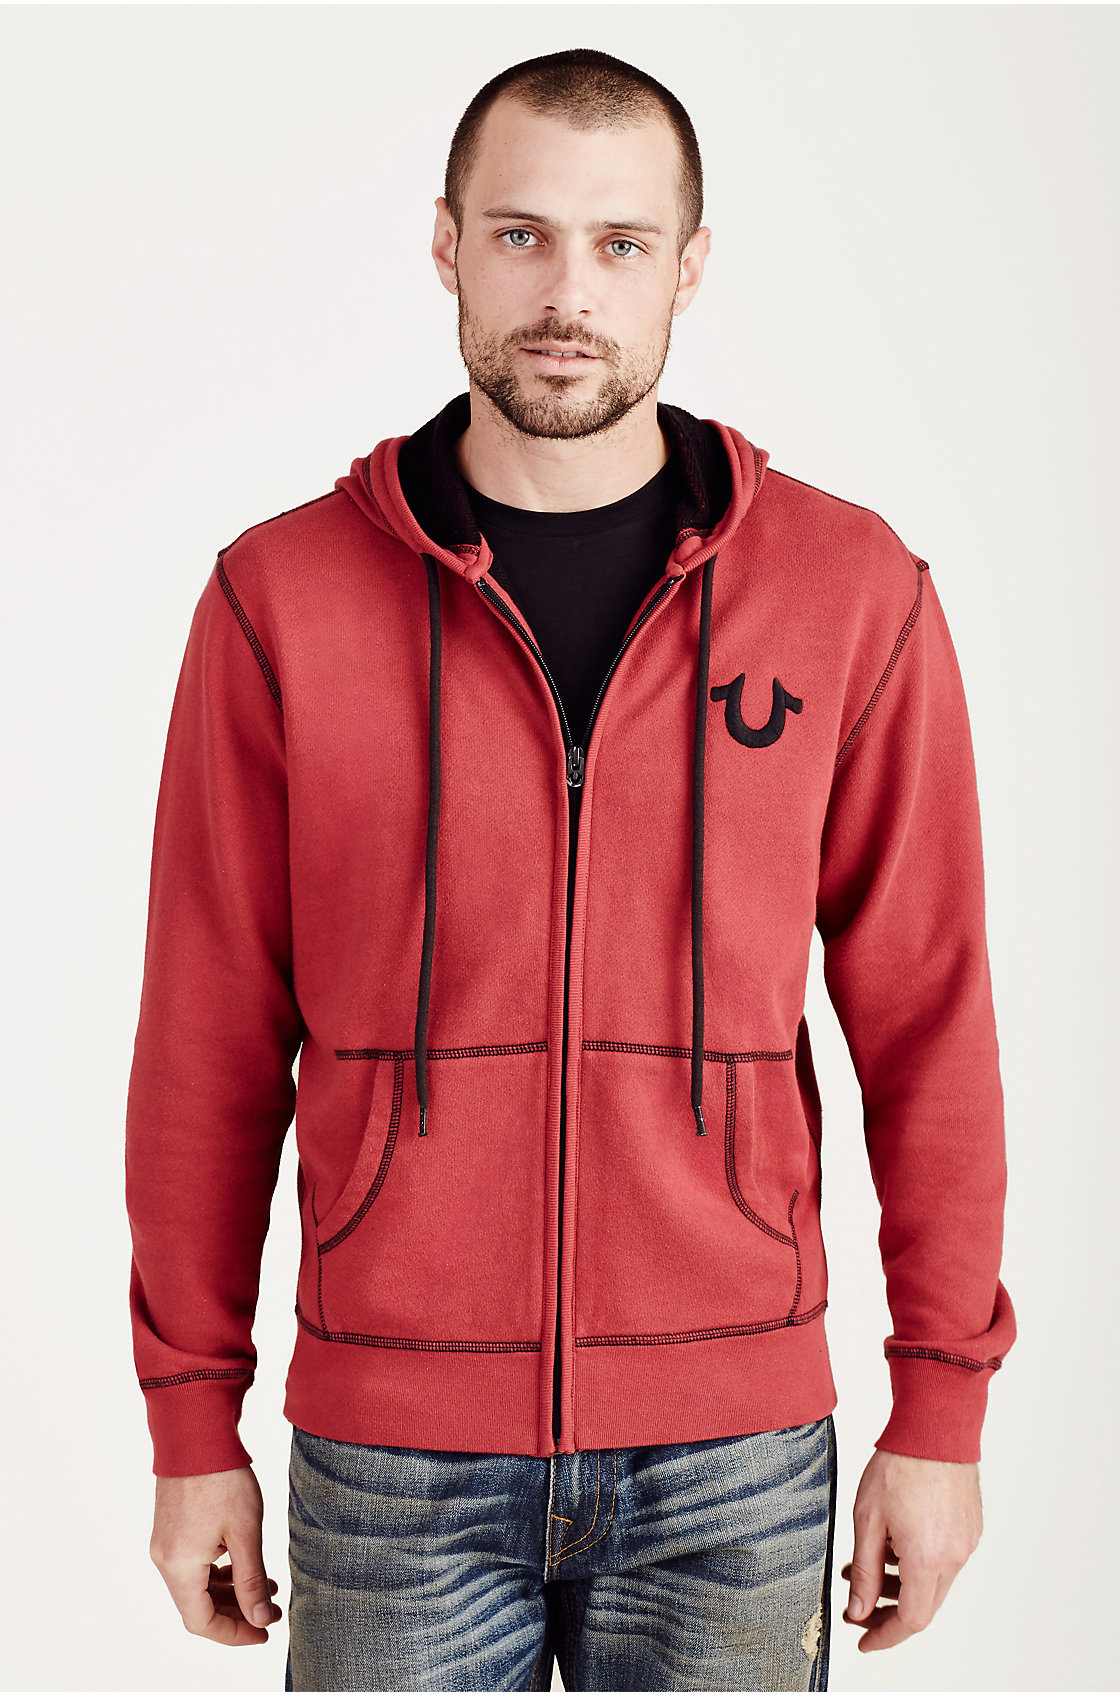 Lyst - True Religion Buddha Mens Hoodie in Red for Men